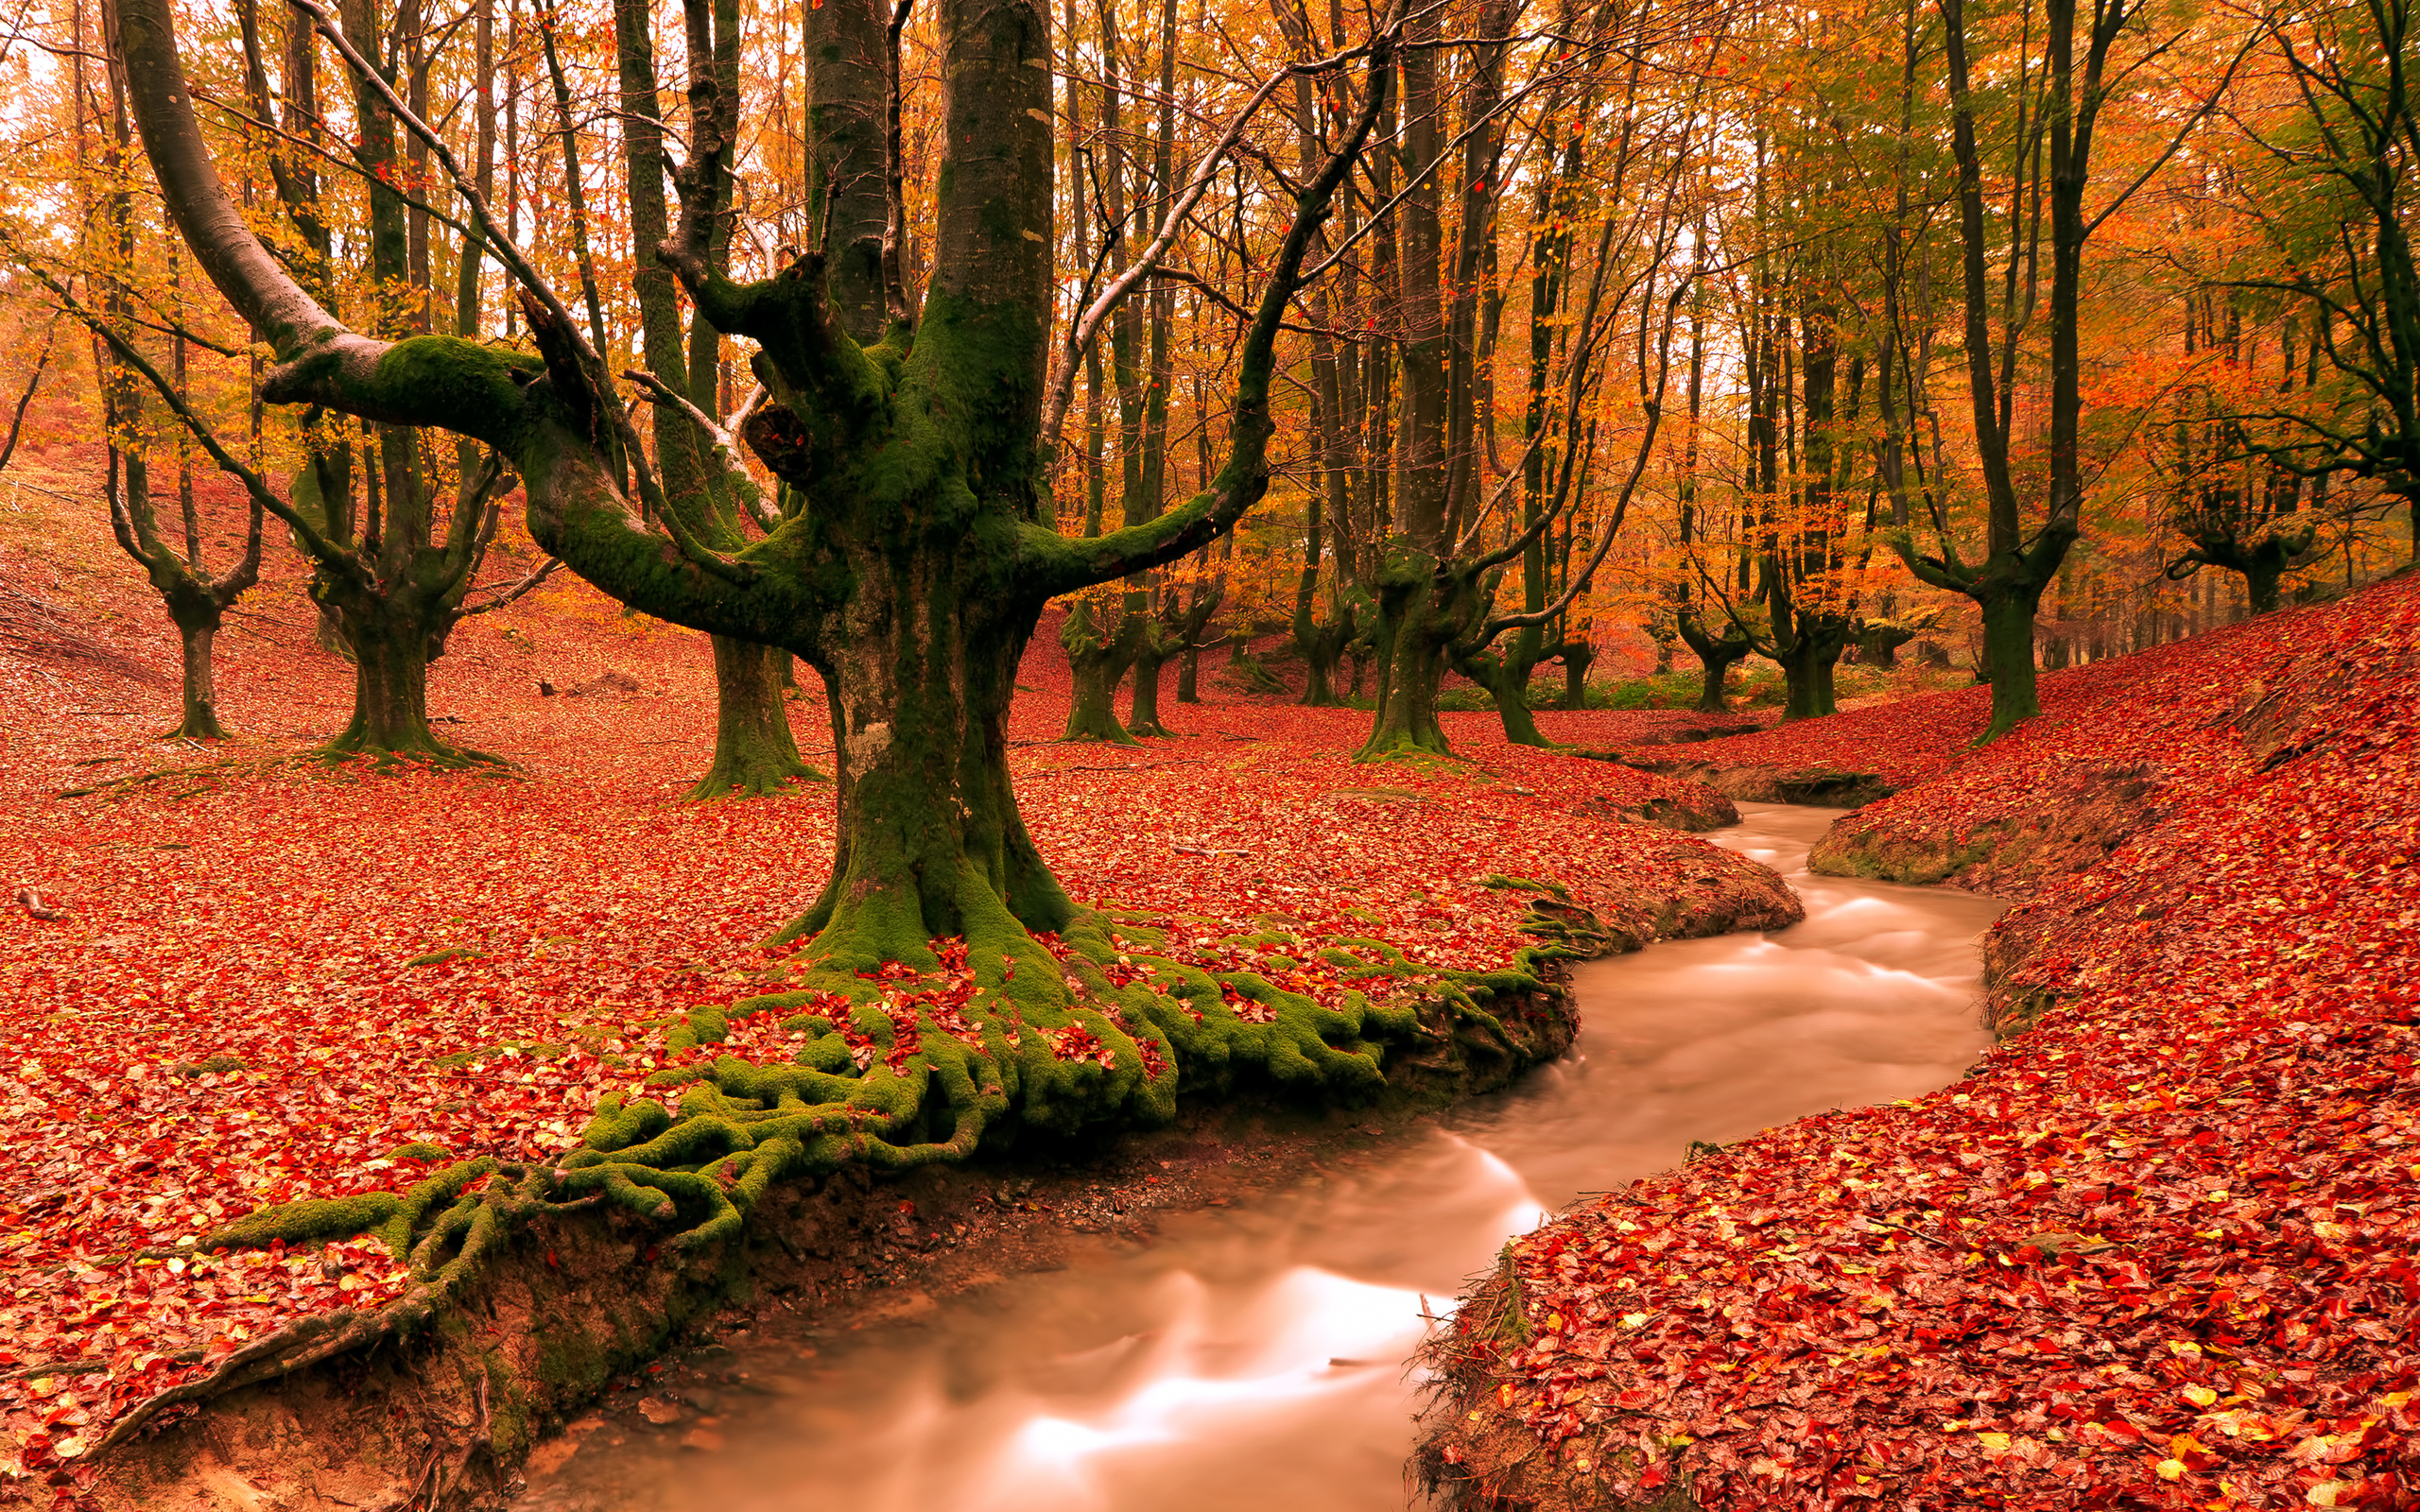 images of autumn desktop wallpapers free on latoro wallpaperhtml 2560x1600